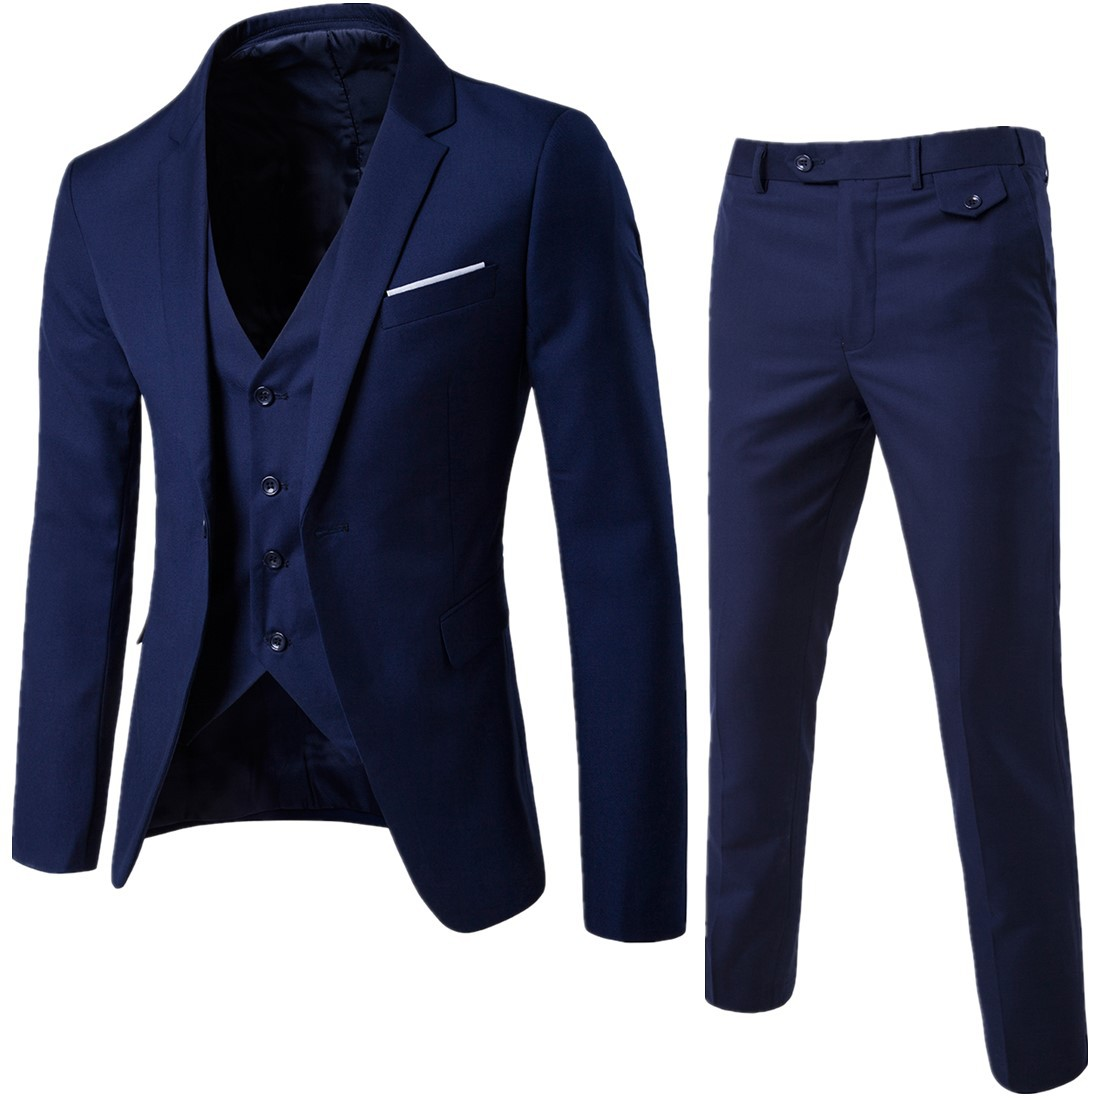 Spring And Autumn New Style Men Best Man England Classic Slim Fit Suit Three-piece Set-Youth Business Casual Suit Banquet